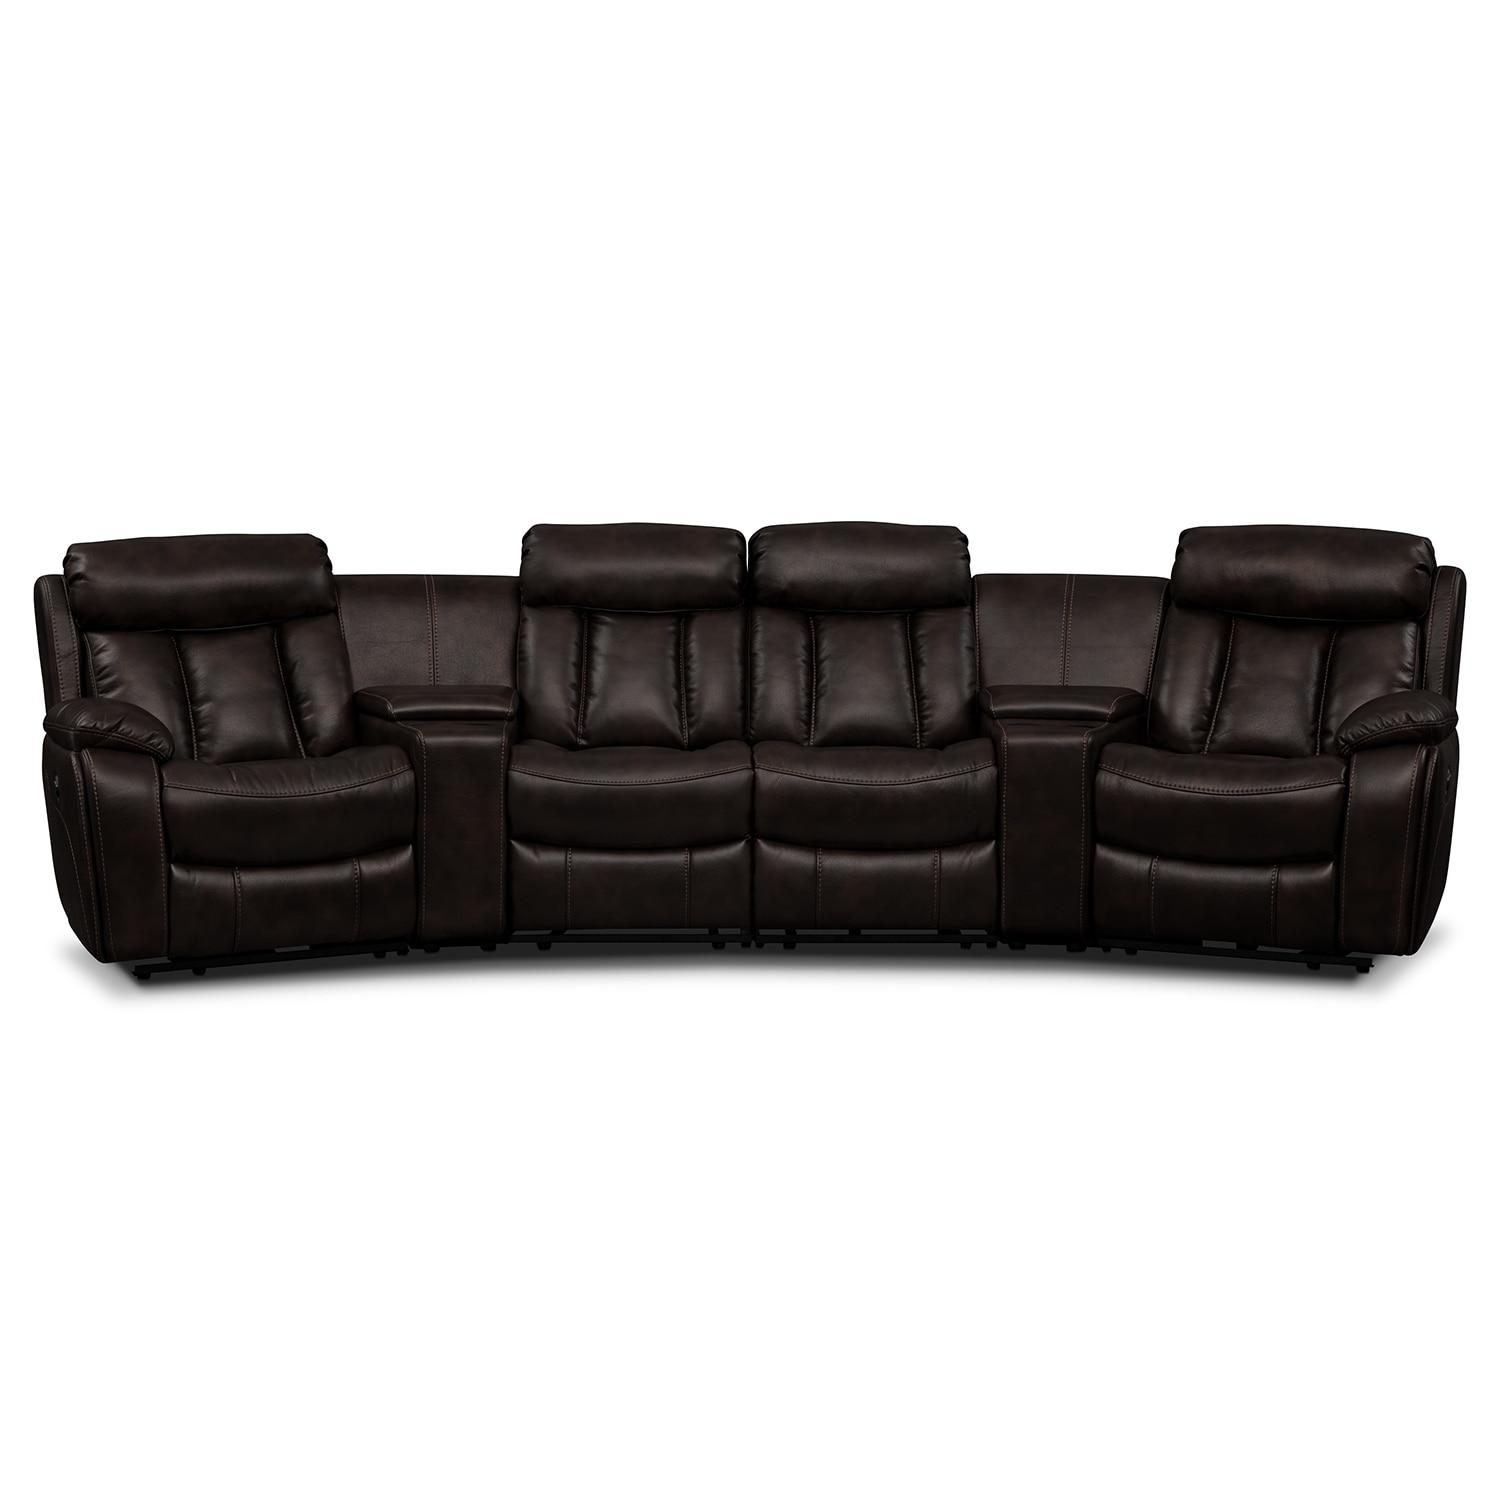 Sectionals With Cup Holders – Marketing Module | Value City Furniture In Sofas With Cup Holders (View 11 of 20)